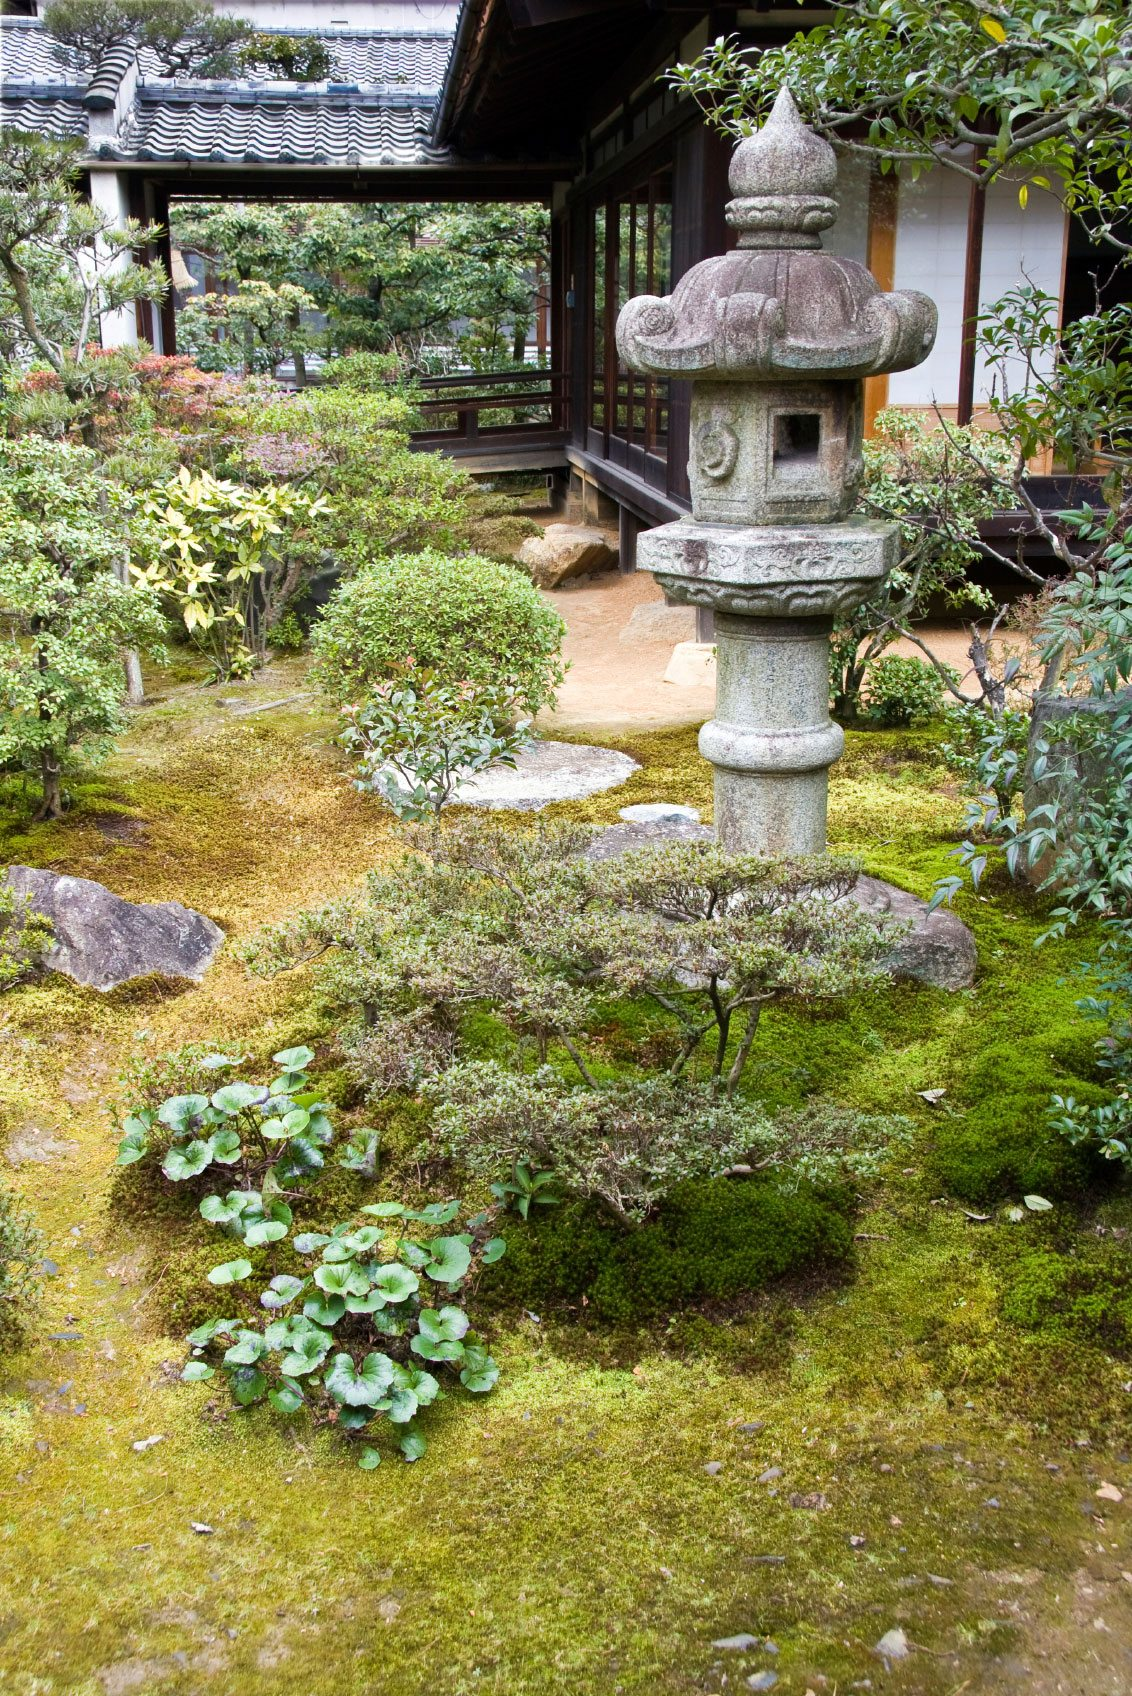 Buddhist Ceremony Traditional Japanese Garden: Information And Tips For Creating